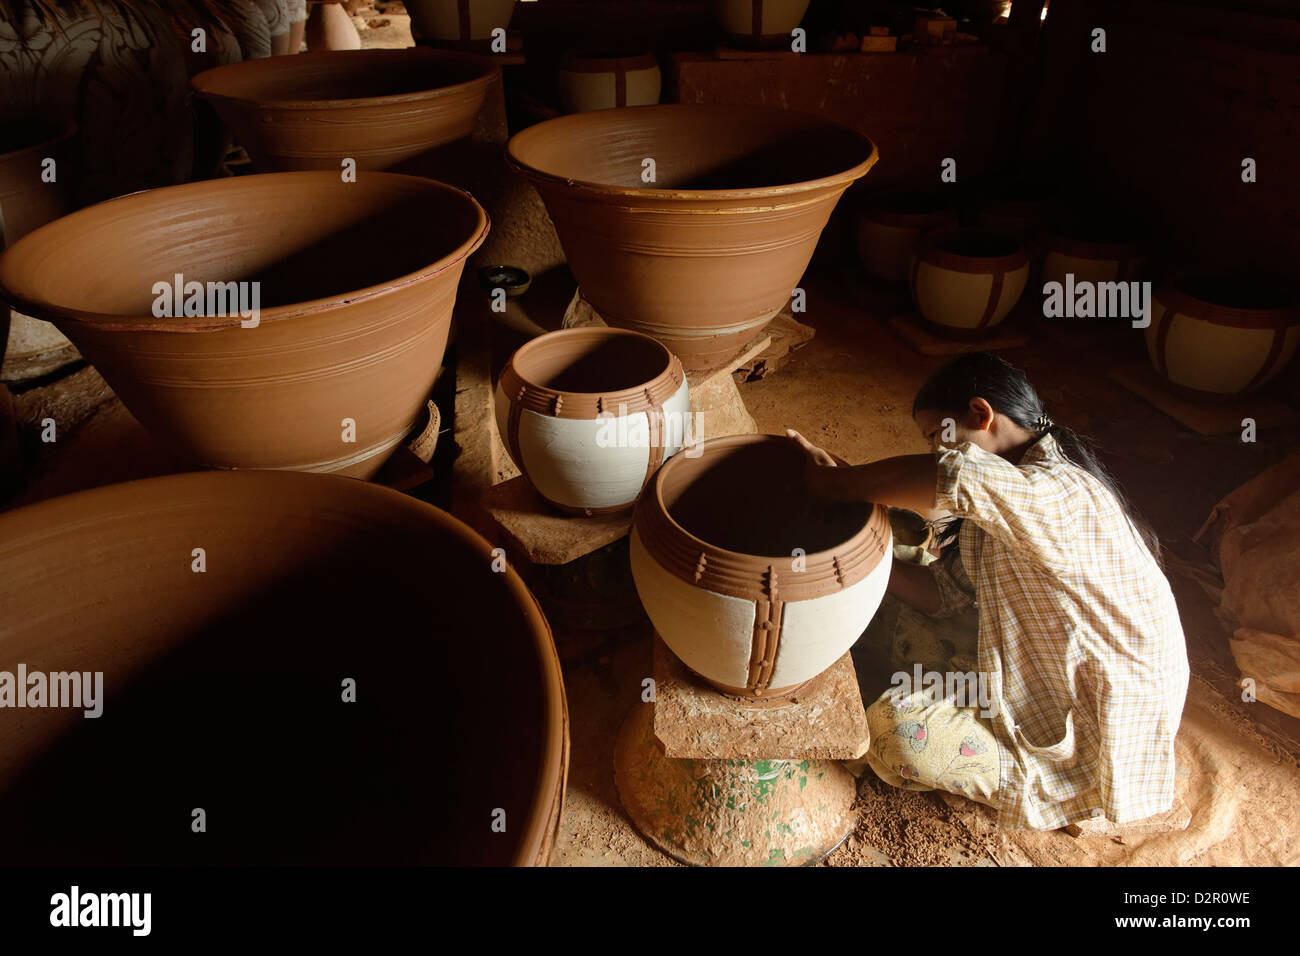 Potter in Nwe Nyein, a pottery town along the Irrawaddy river, Mandalay Division, Myanmar - Stock Image